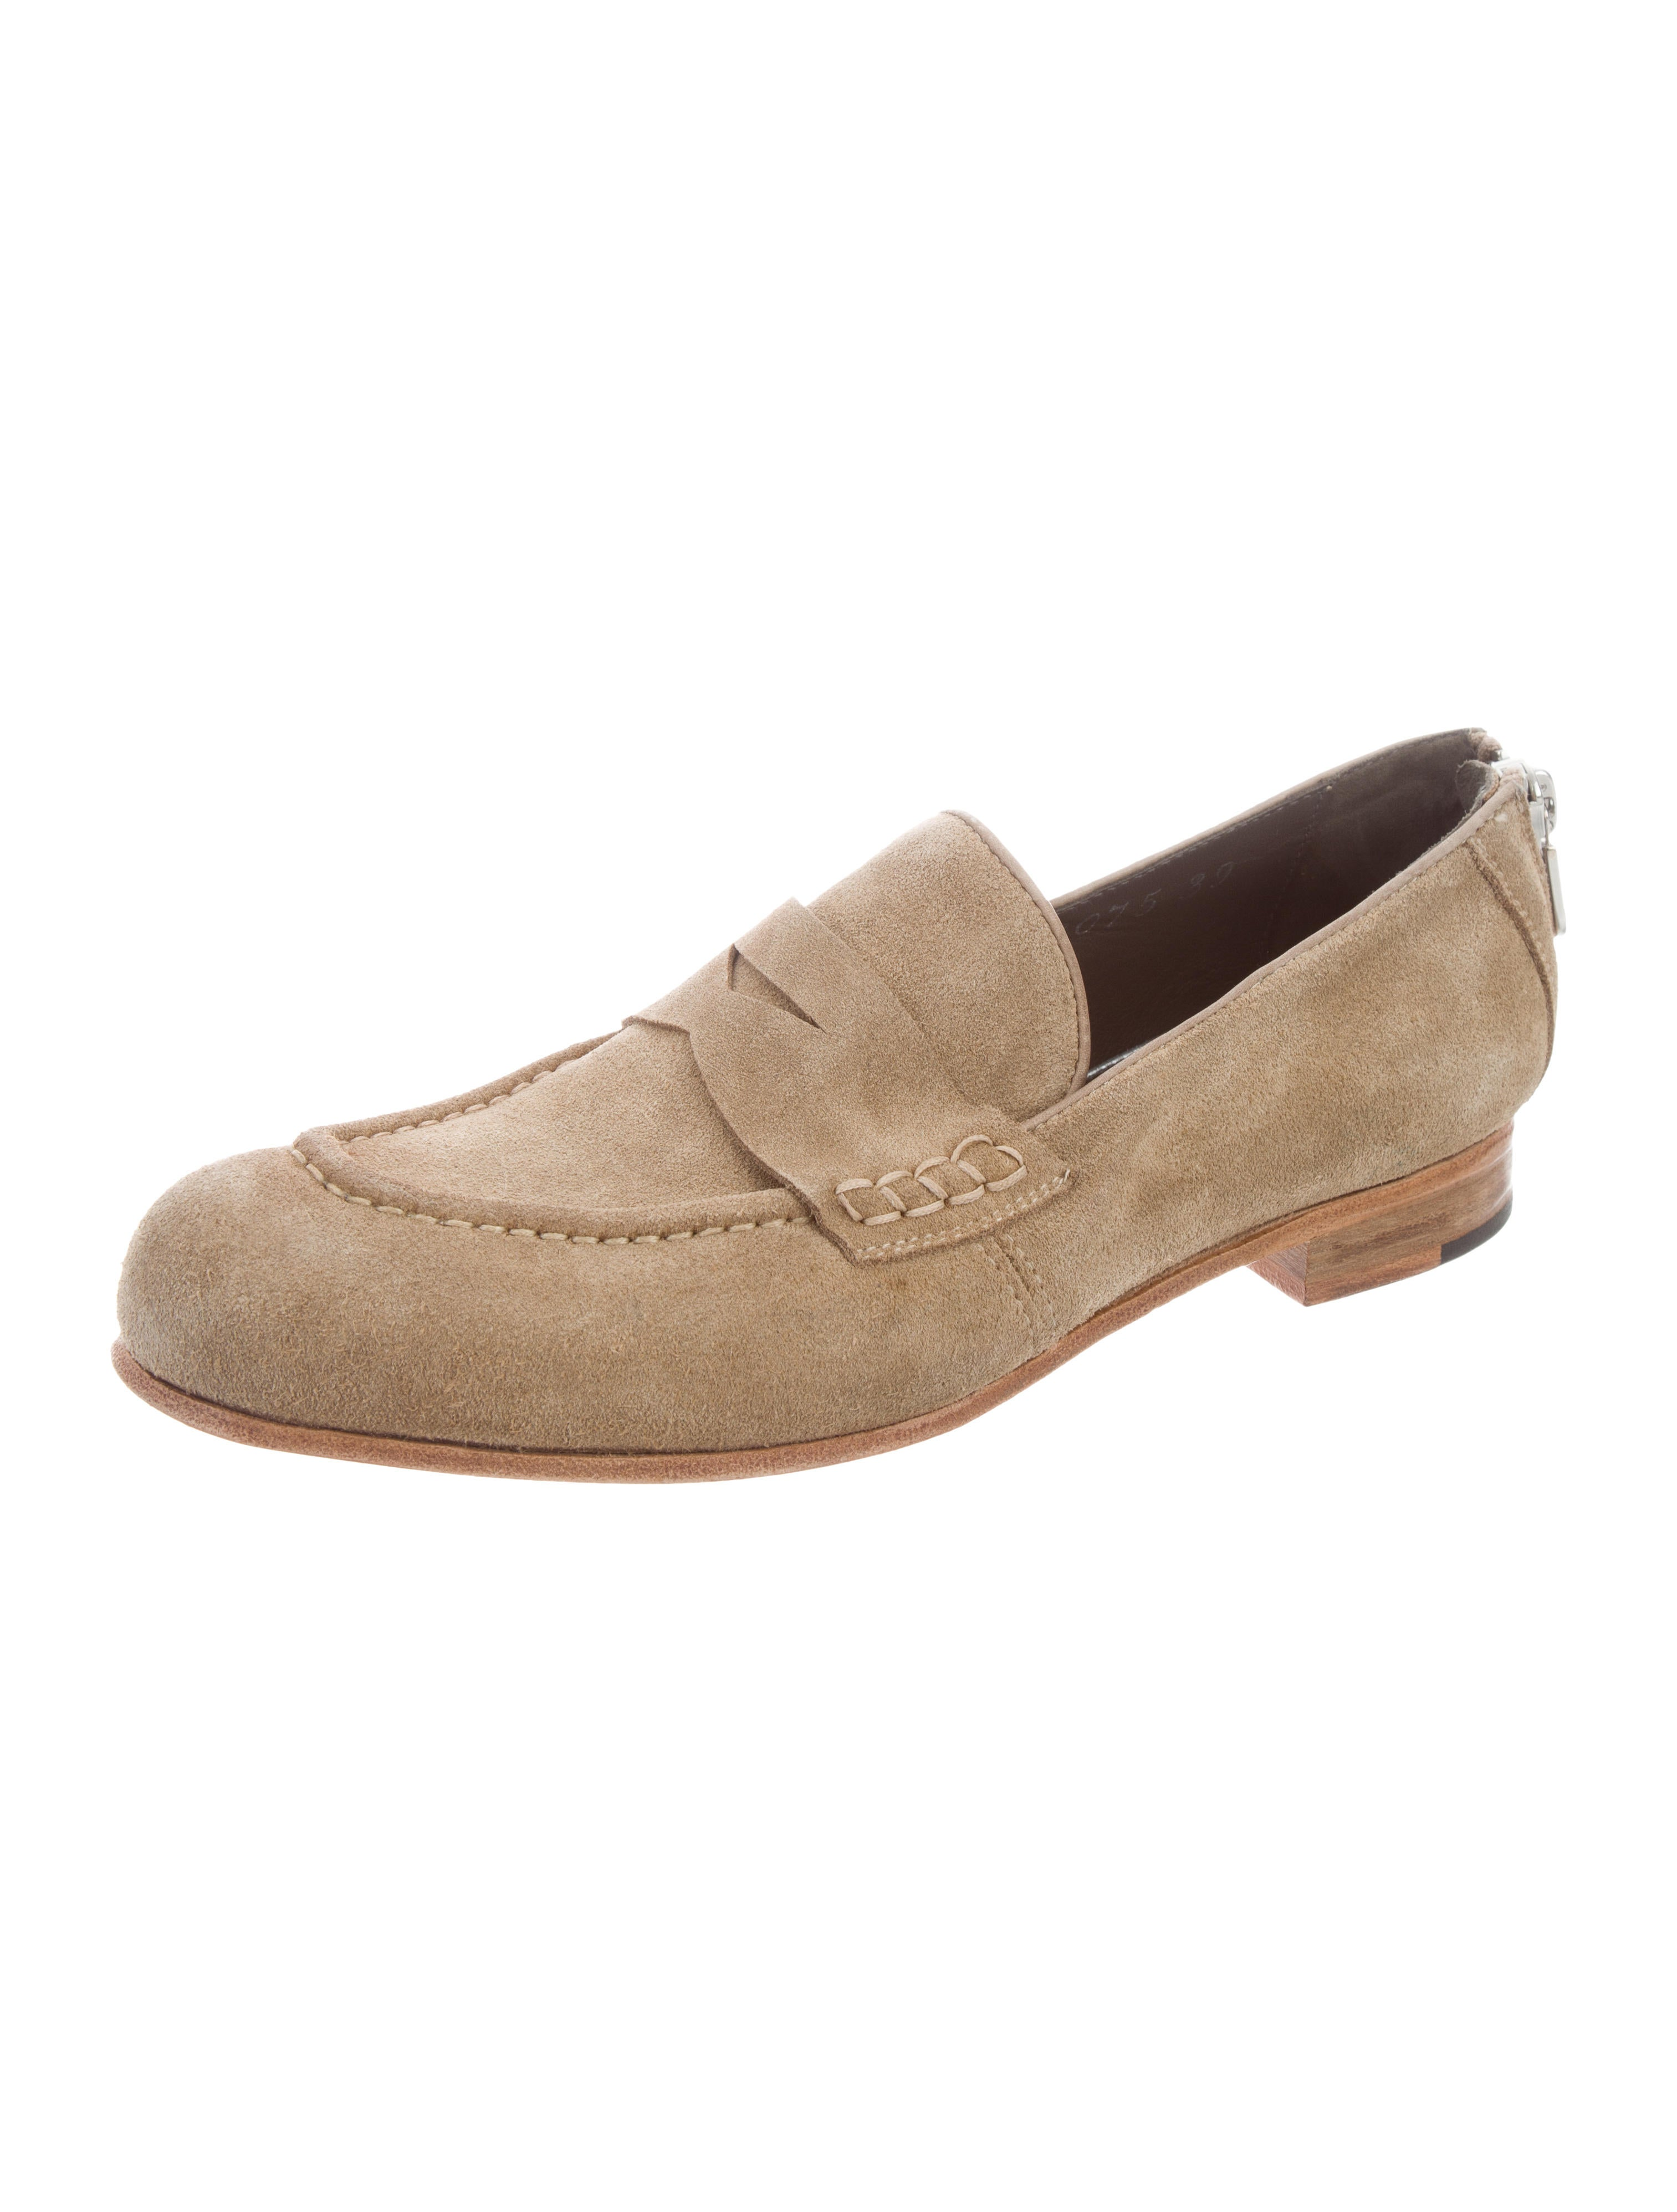 2014 new sale online fast delivery sale online Rocco P. Suede Penny Loafers w/ Tags sale new styles smdxqgsVe